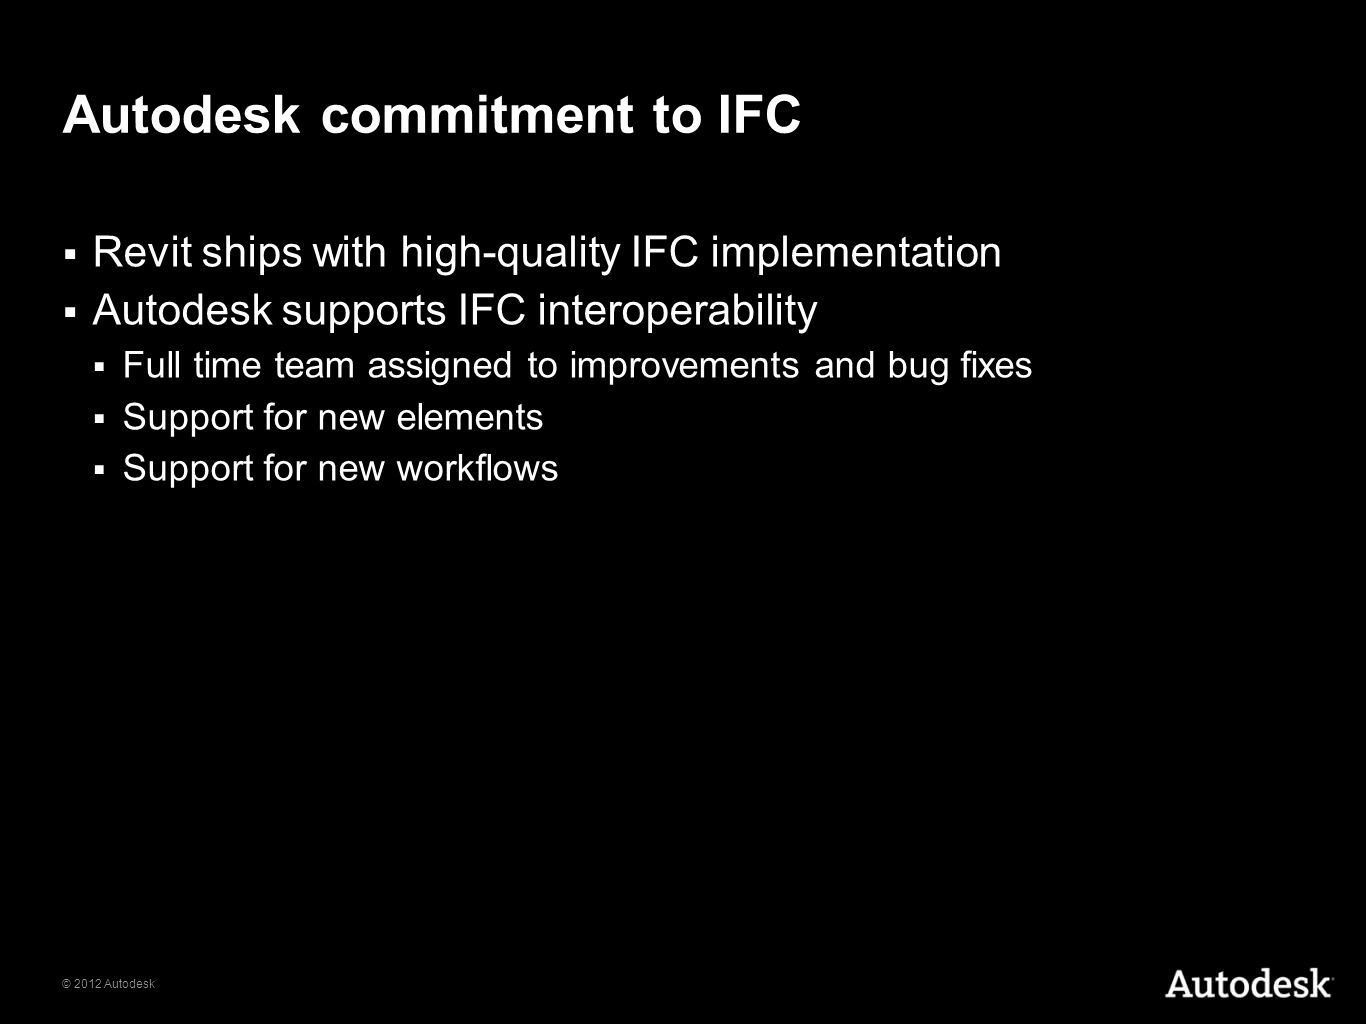 Autodesk commitment to IFC